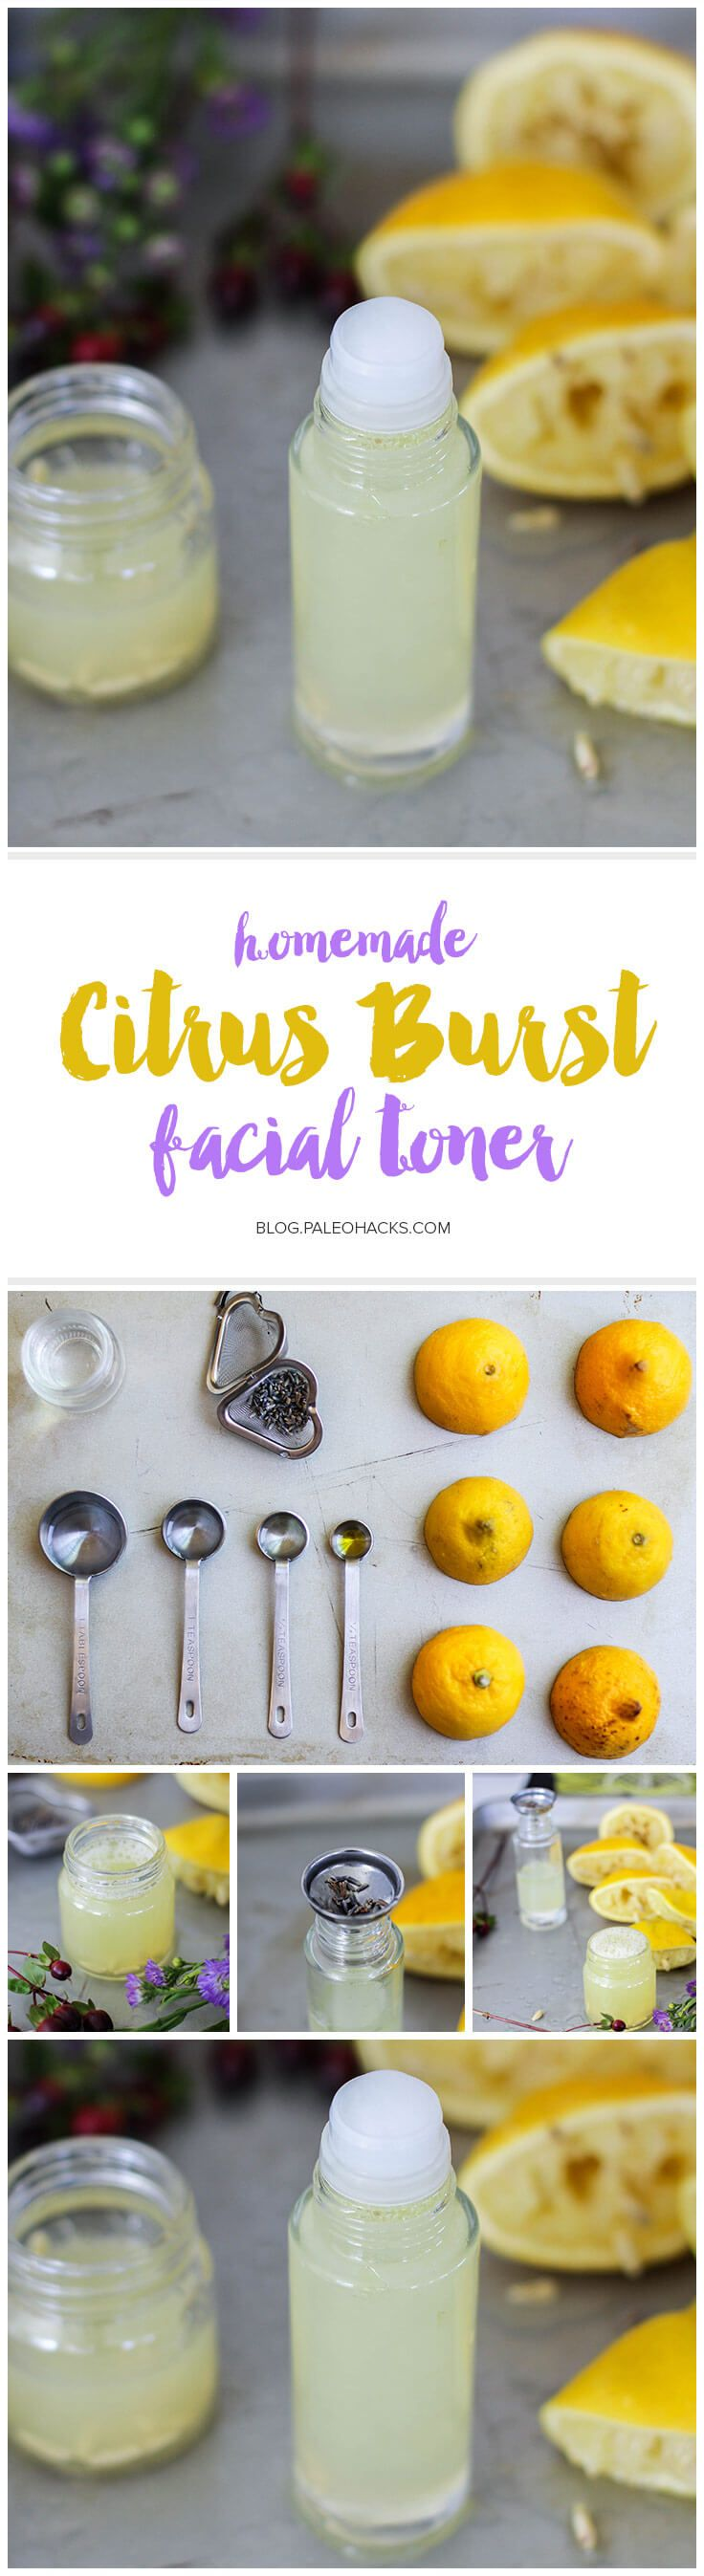 This homemade citrus burst facial toner will leave your face feeling fresh, clean, and sweet-smelling. Get the recipe here: http://paleo.co/DIYfacialtoner